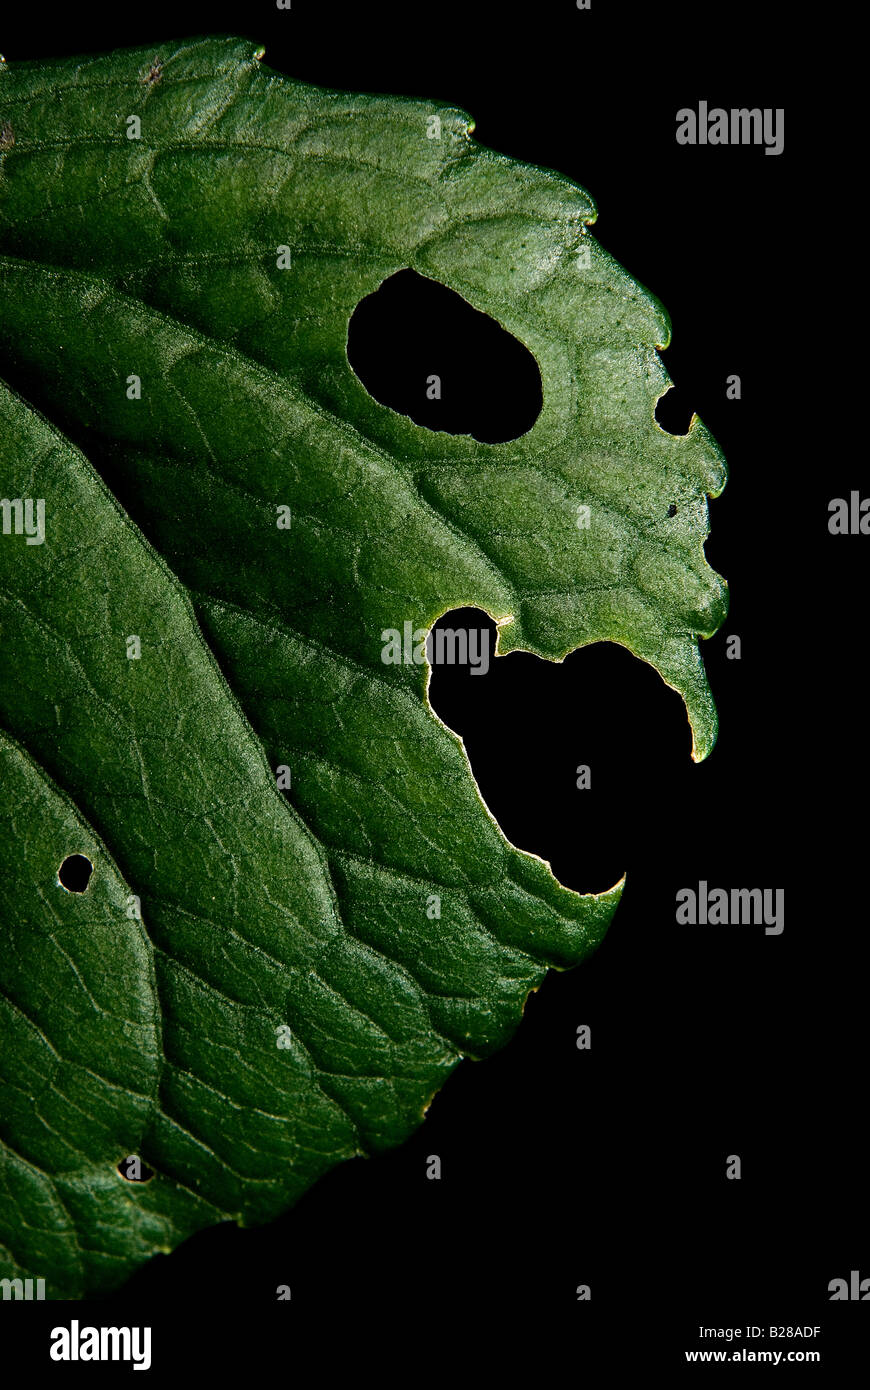 Green plant. Leaf face. 2008 - Stock Image